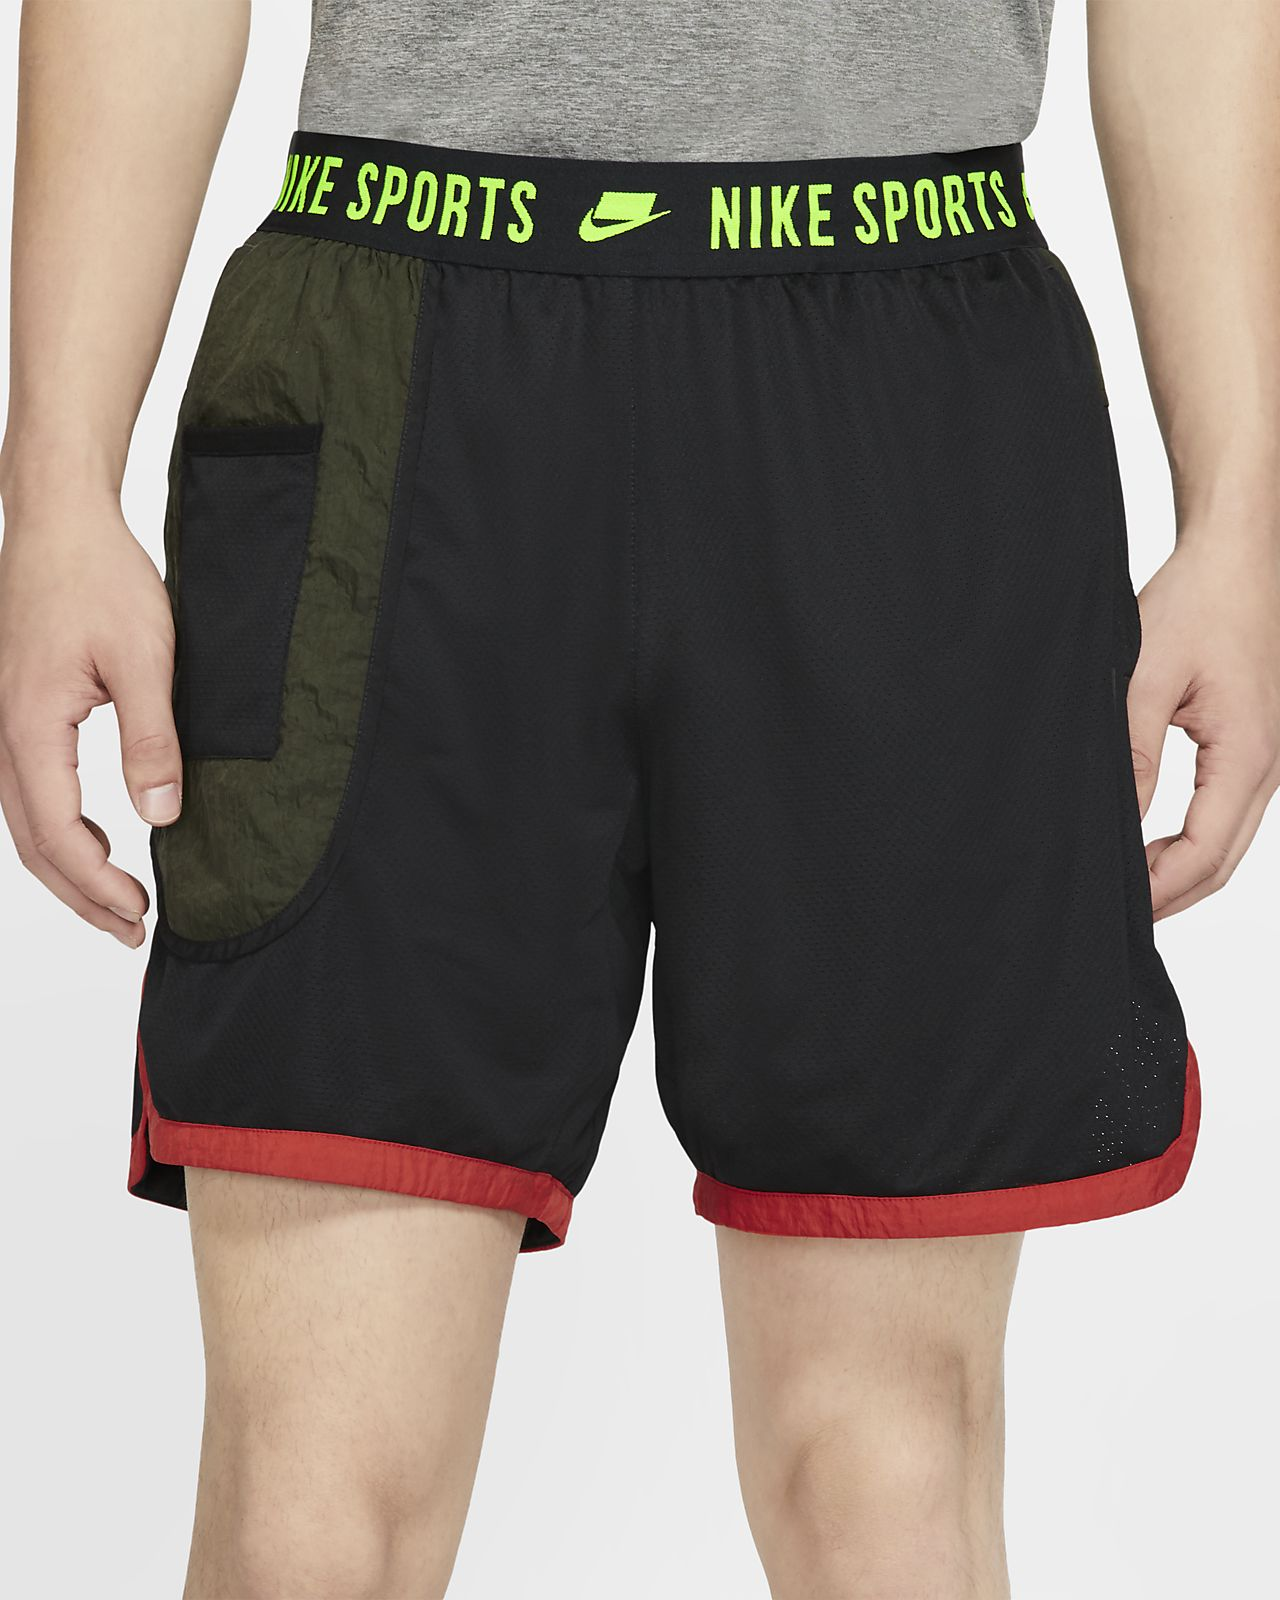 Nike Dri-FIT Sport Clash Men's Training Shorts